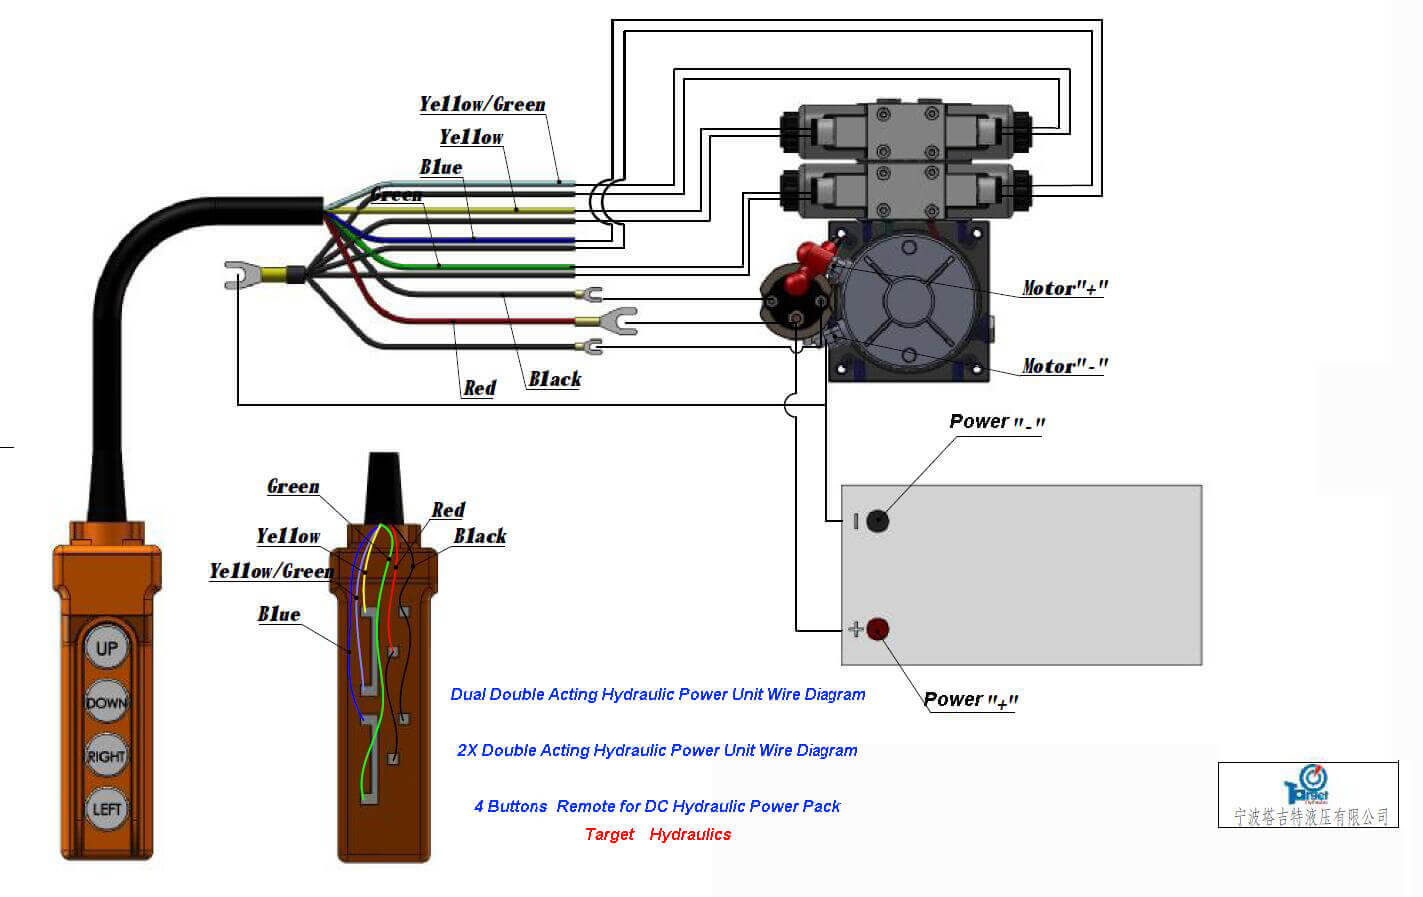 dual double acting hydraulic cylinder Power Units Wiring Diagram drawing?resize=665%2C419 dhollandia tail lift wiring diagram dhollandia wiring diagrams  at webbmarketing.co